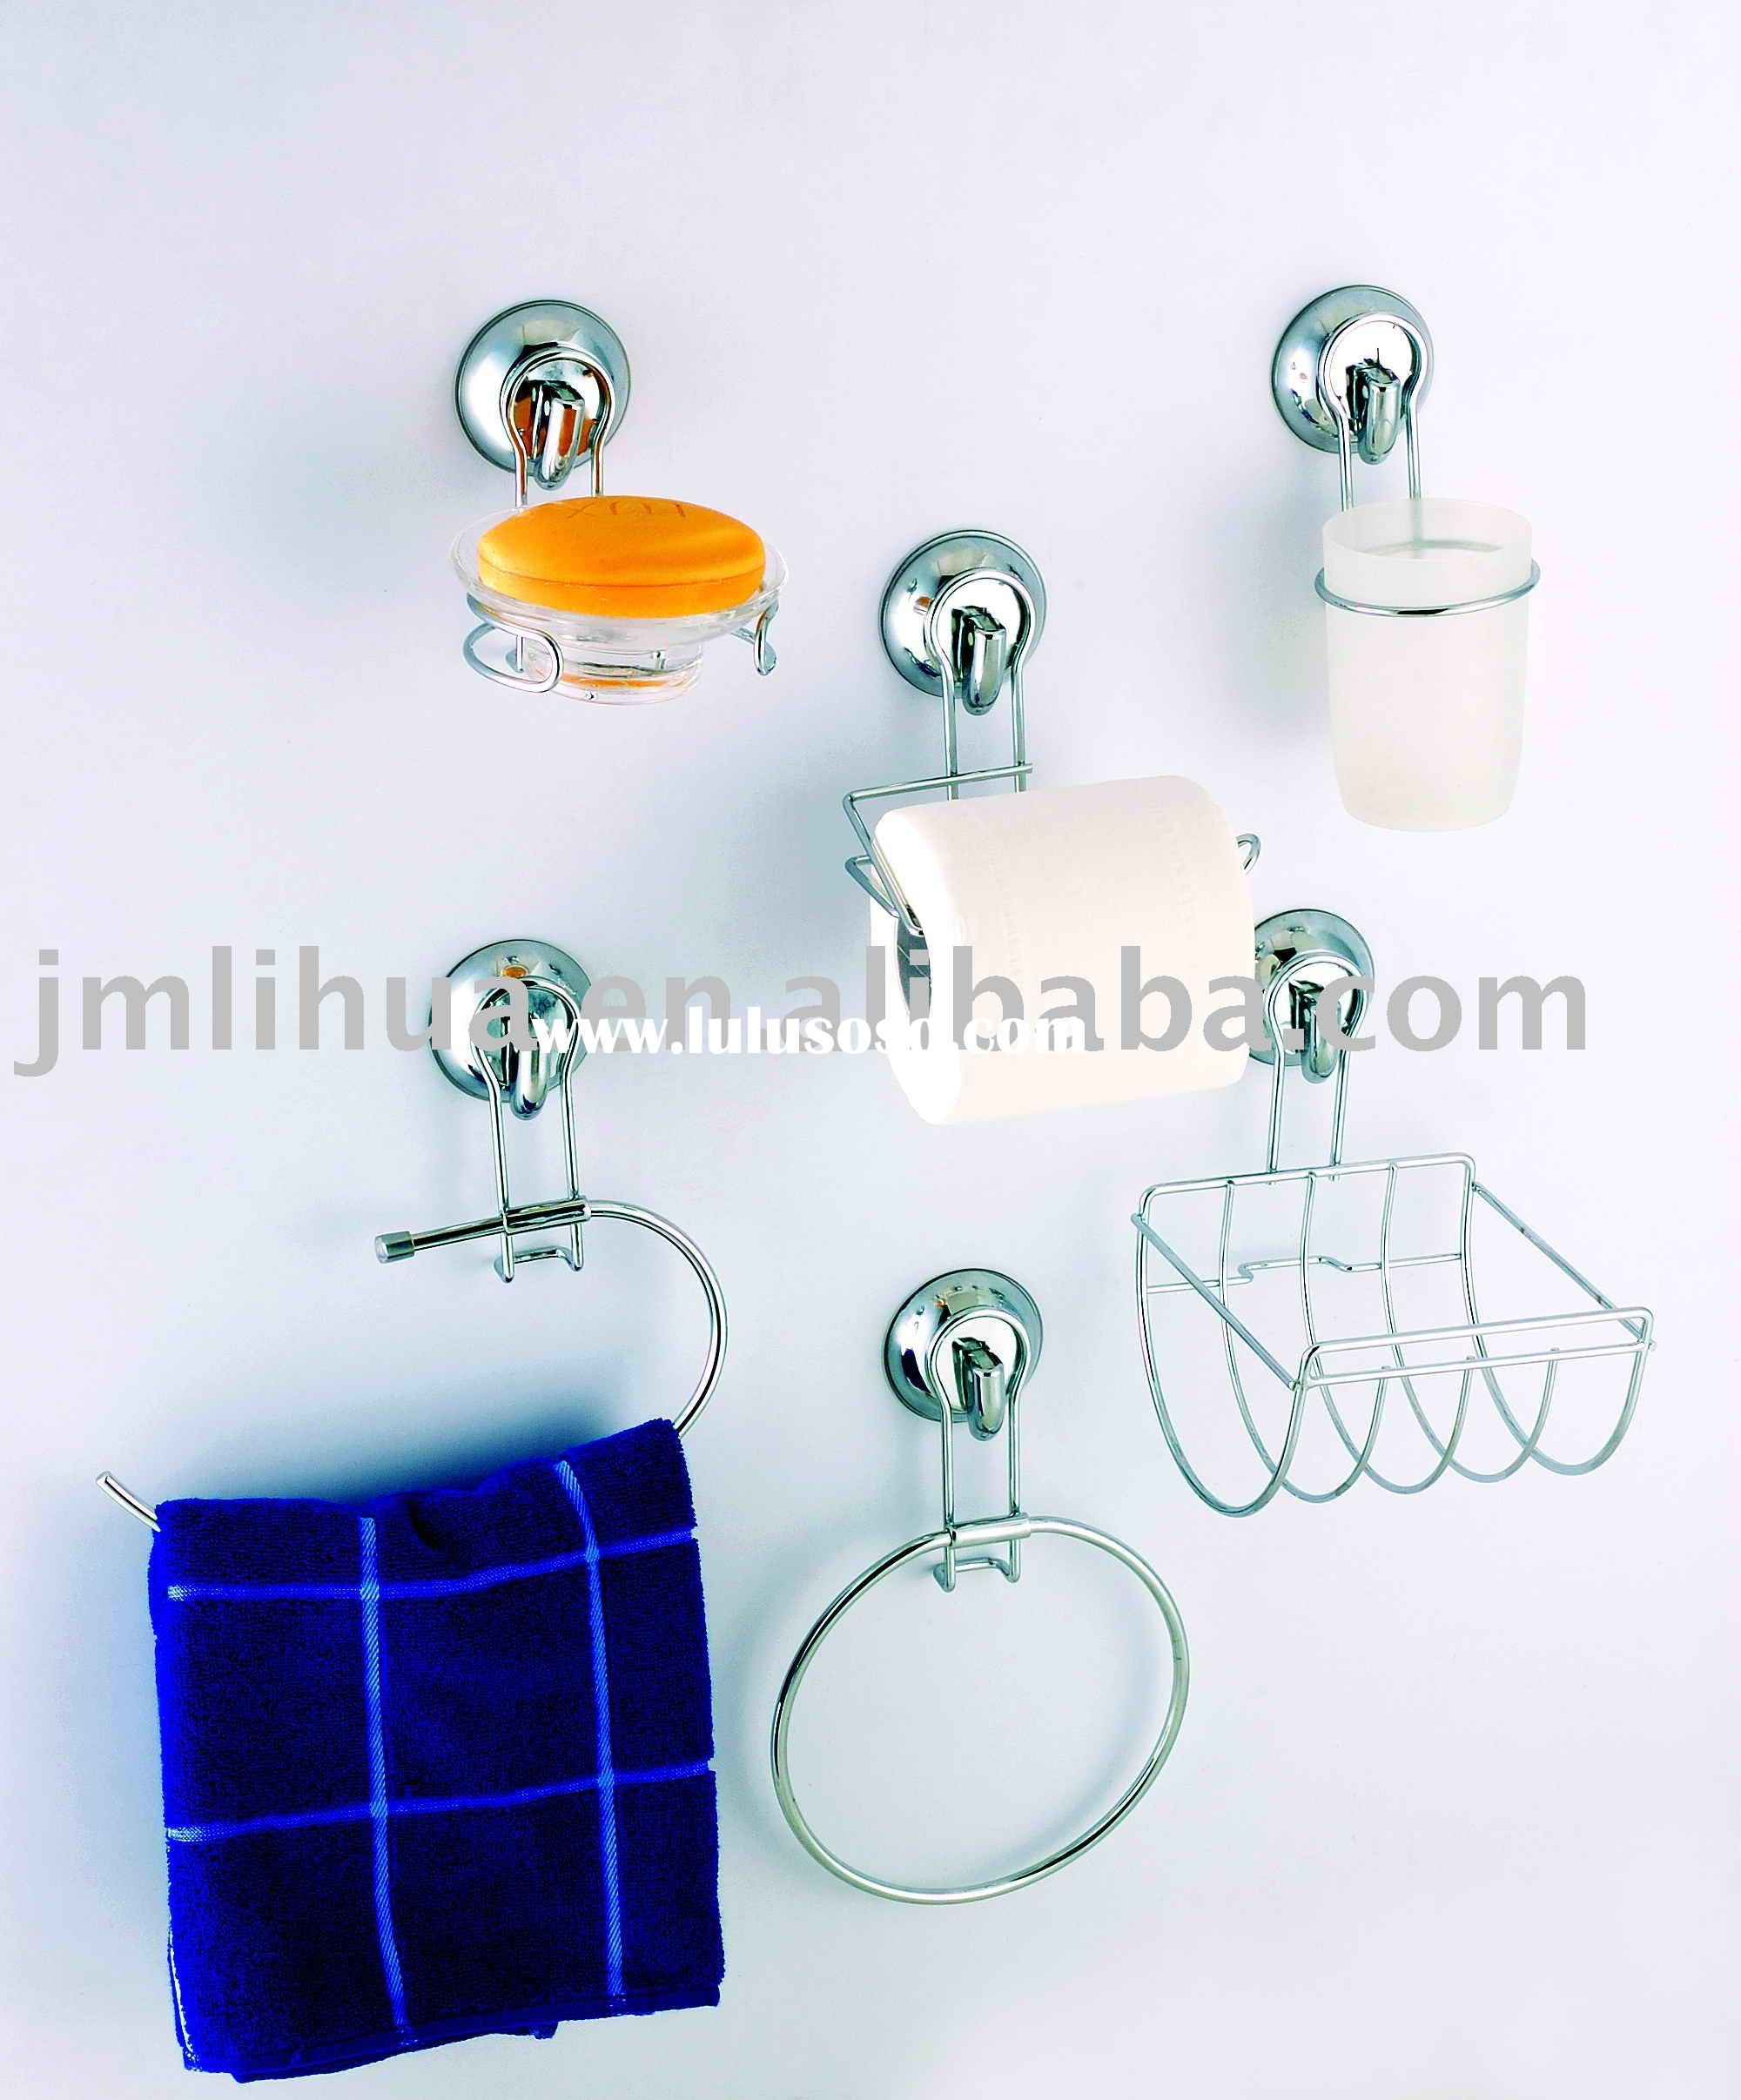 Suction Cup Bathroom Accessories IKEA Immeln Series Suction Cup ...